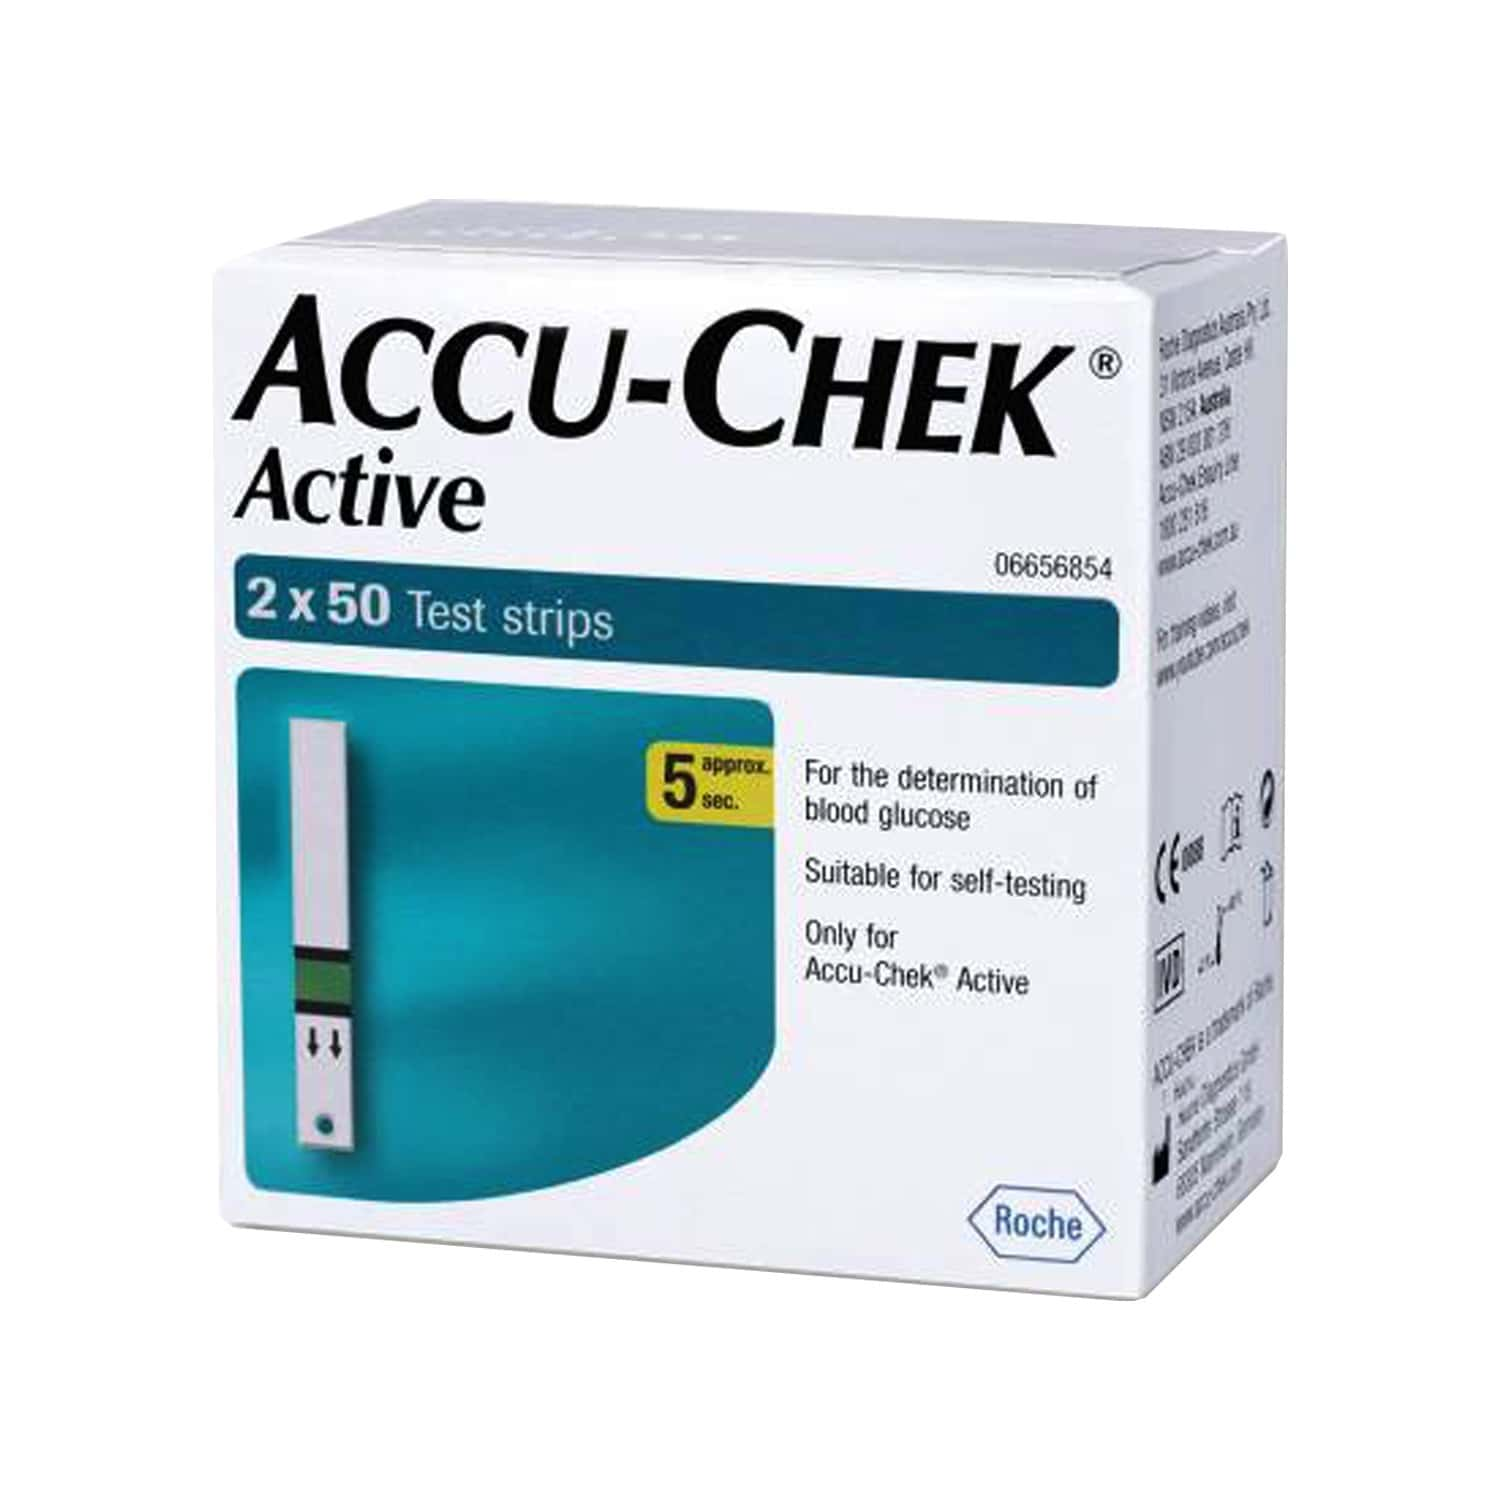 Accu-chek Active Glucometer Test Strips Box Of 100